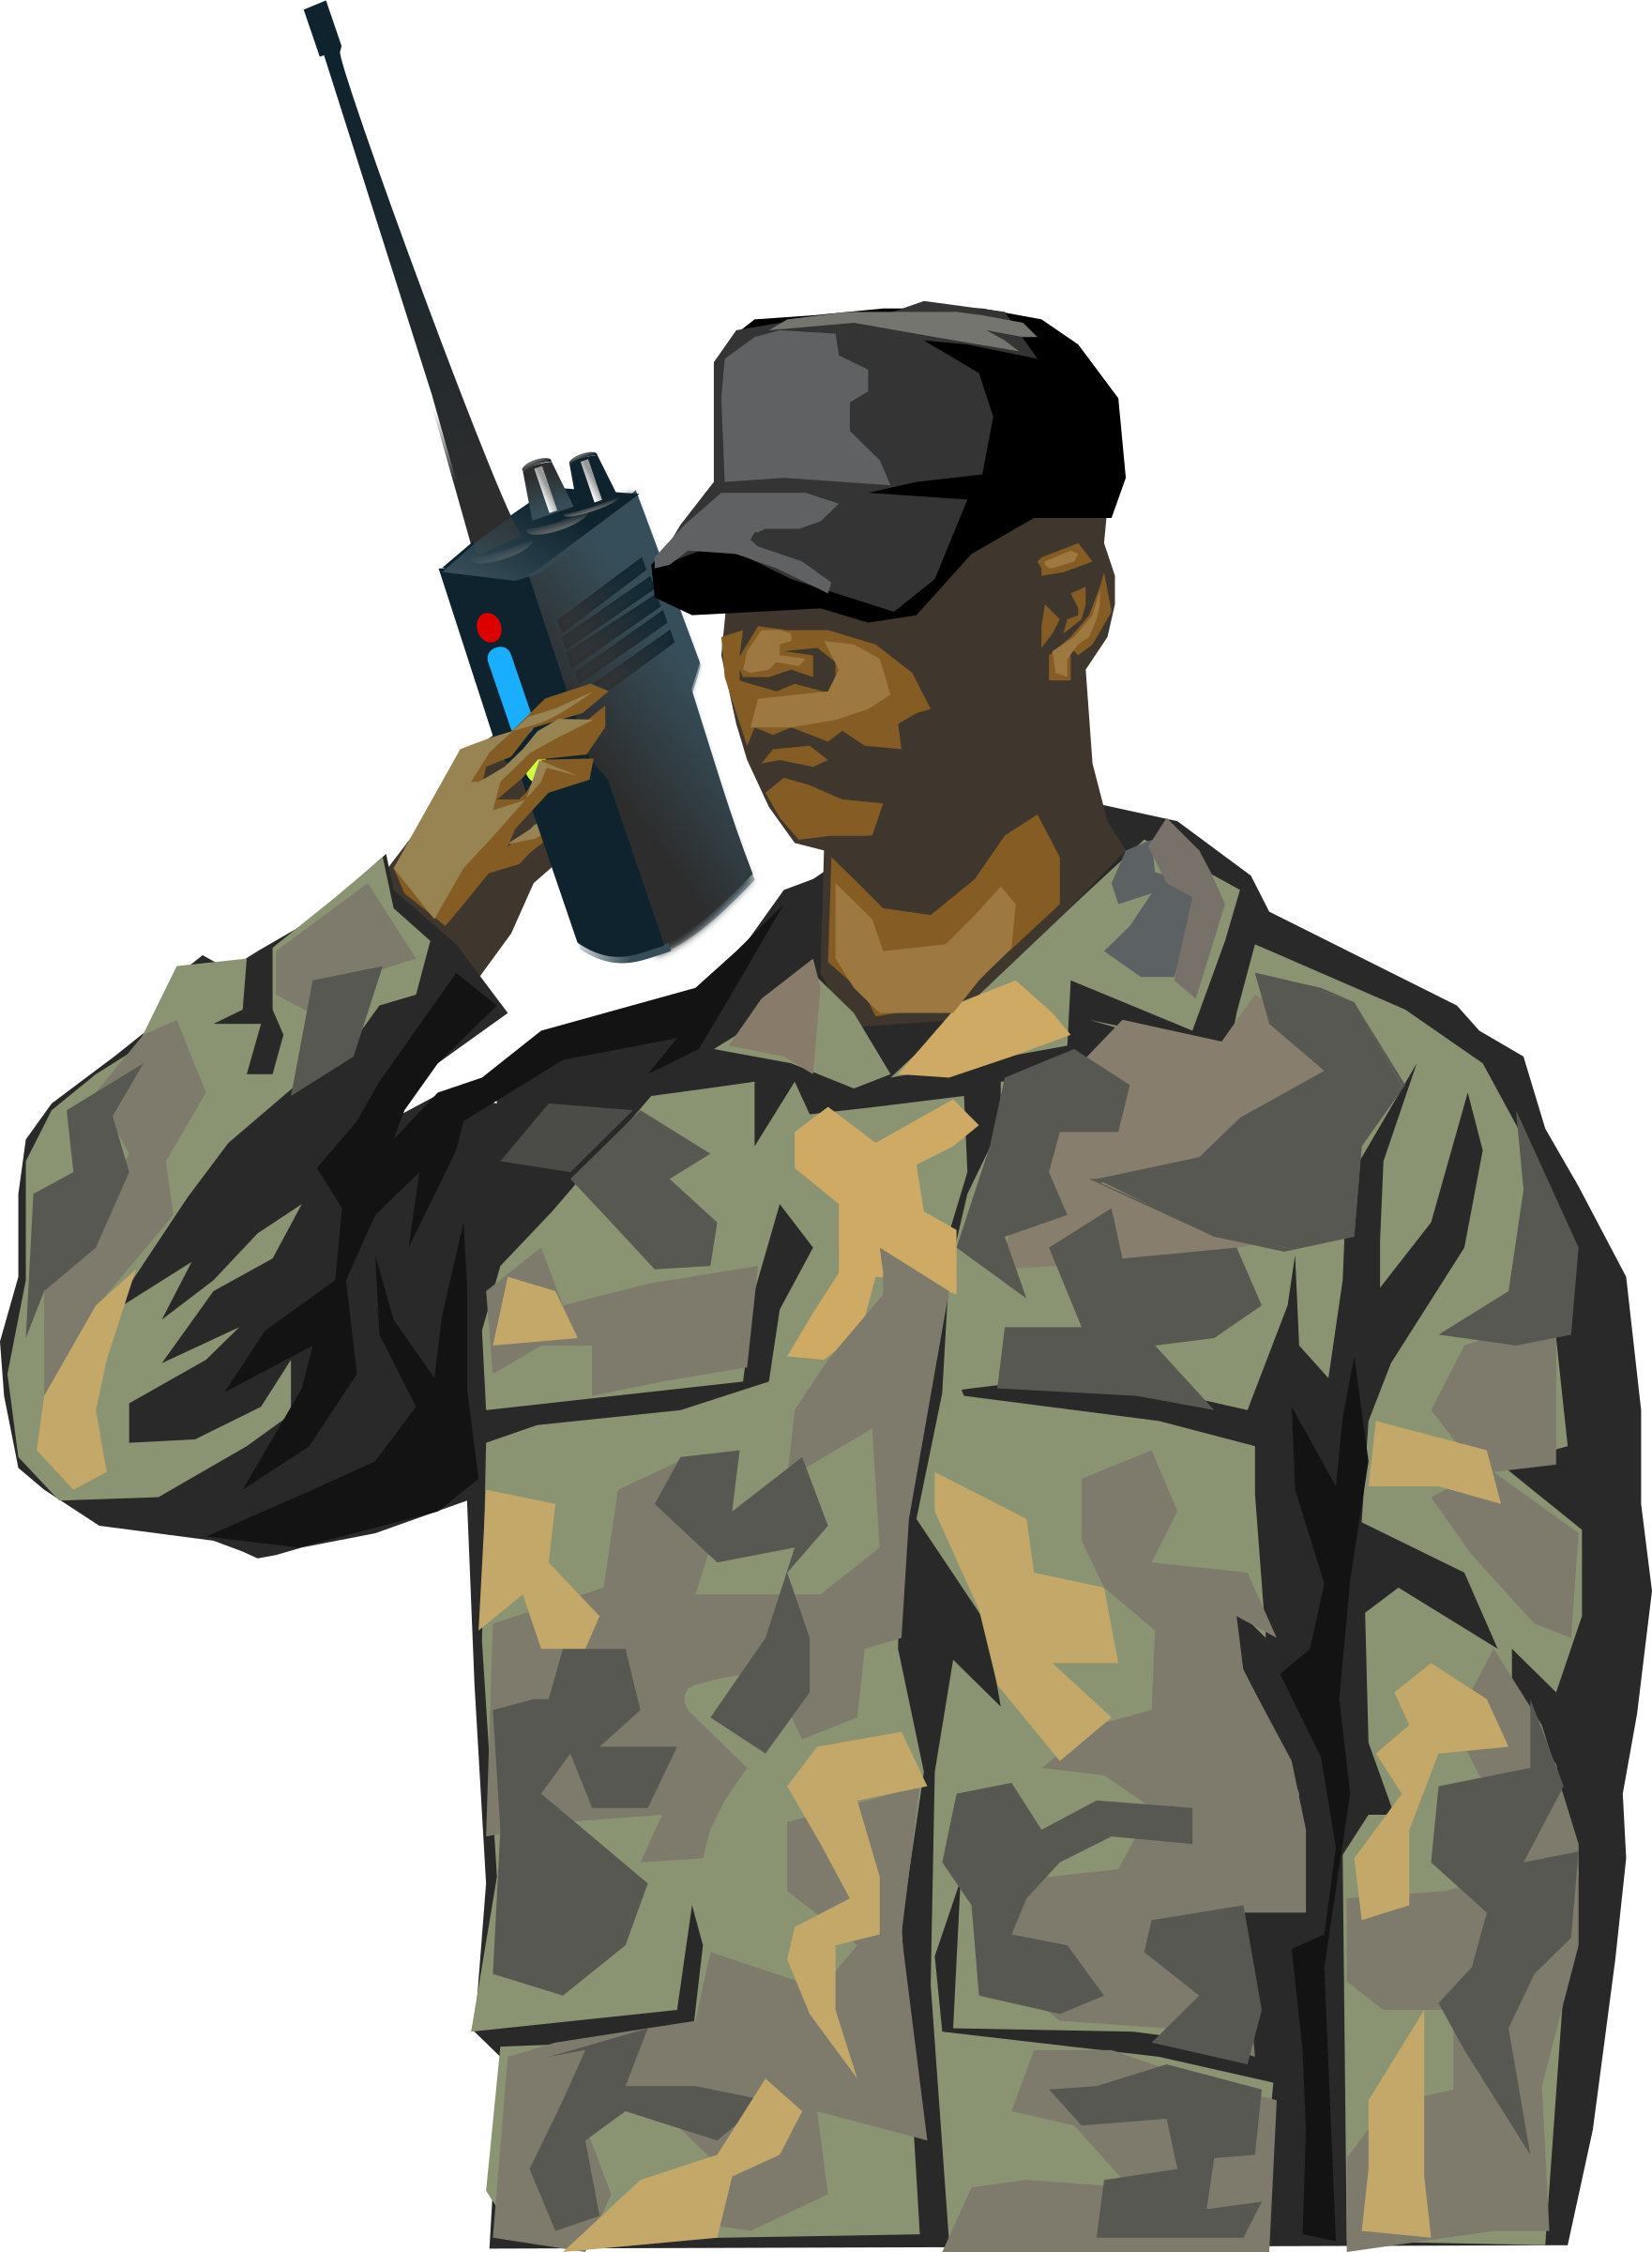 Soldier with walkie talkie radio (tall) by qubodup